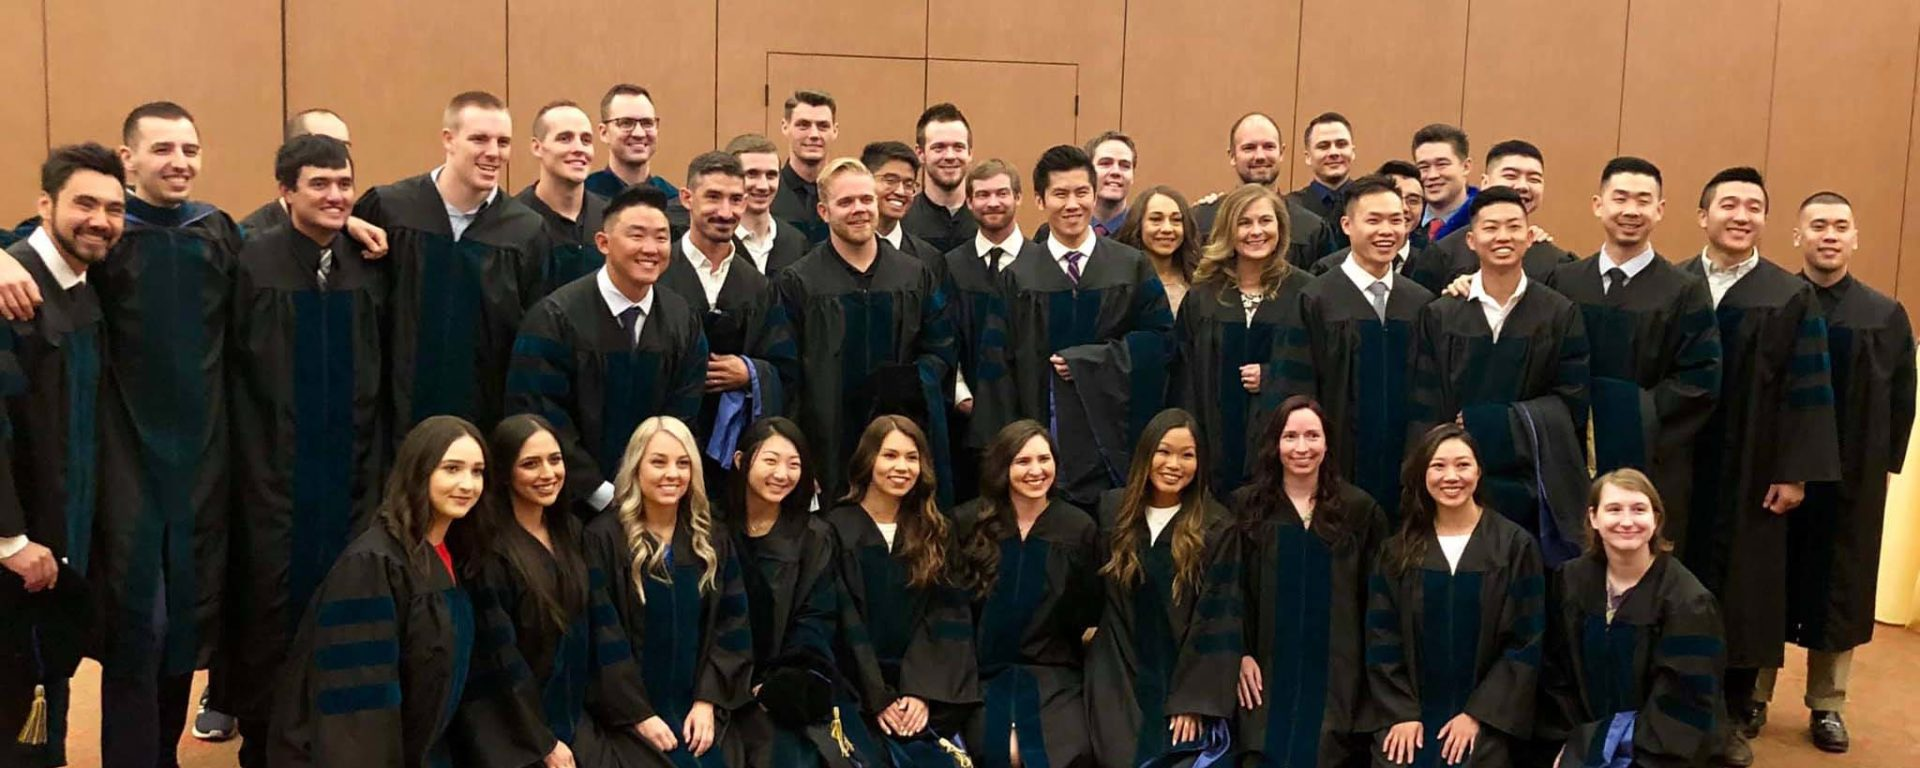 School of Physical Therapy's Class of 2019